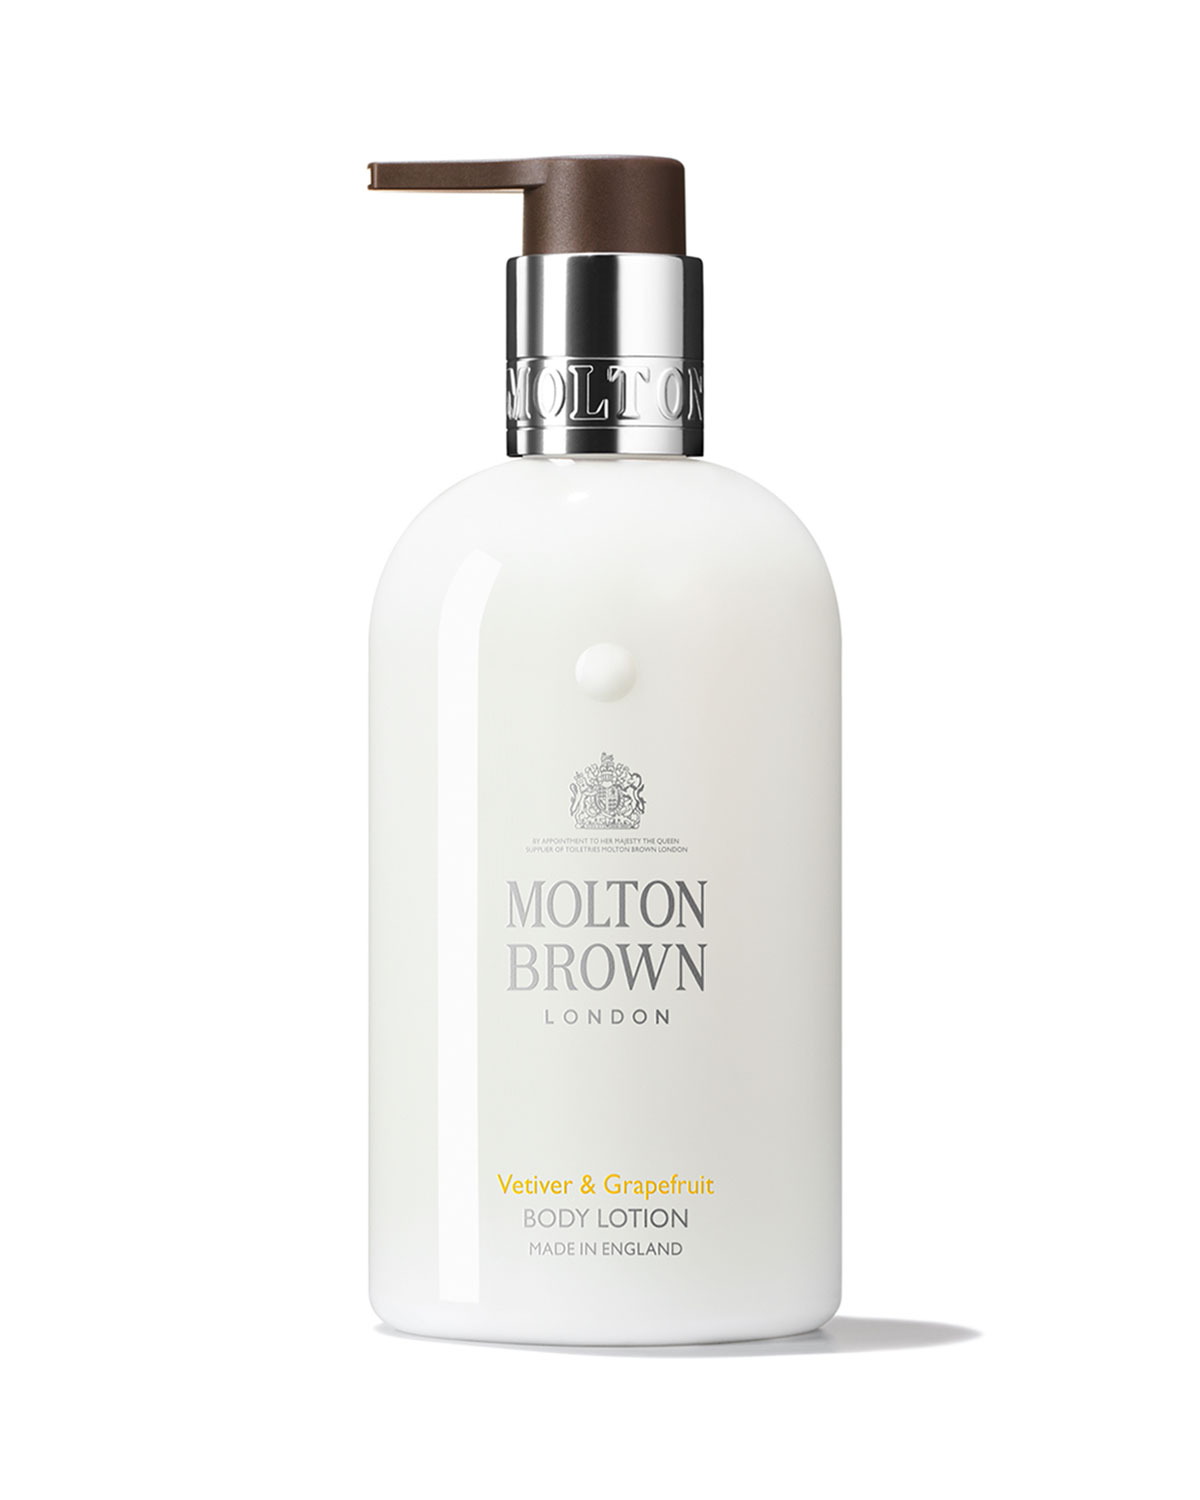 Molton Brown 10 oz. Vetiver & Grapefruit Body Lotion